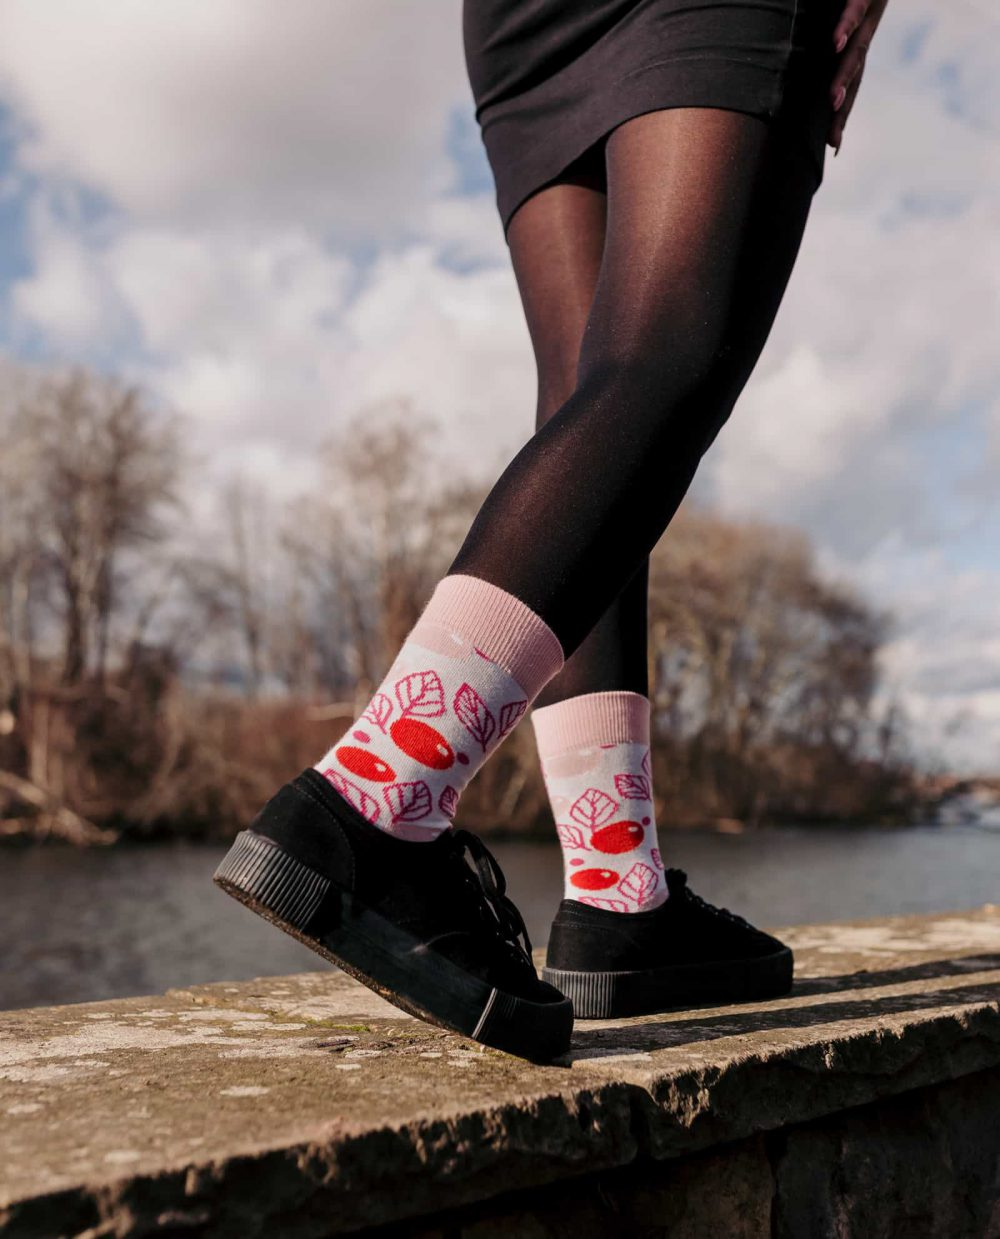 socks for women with pink and floral design